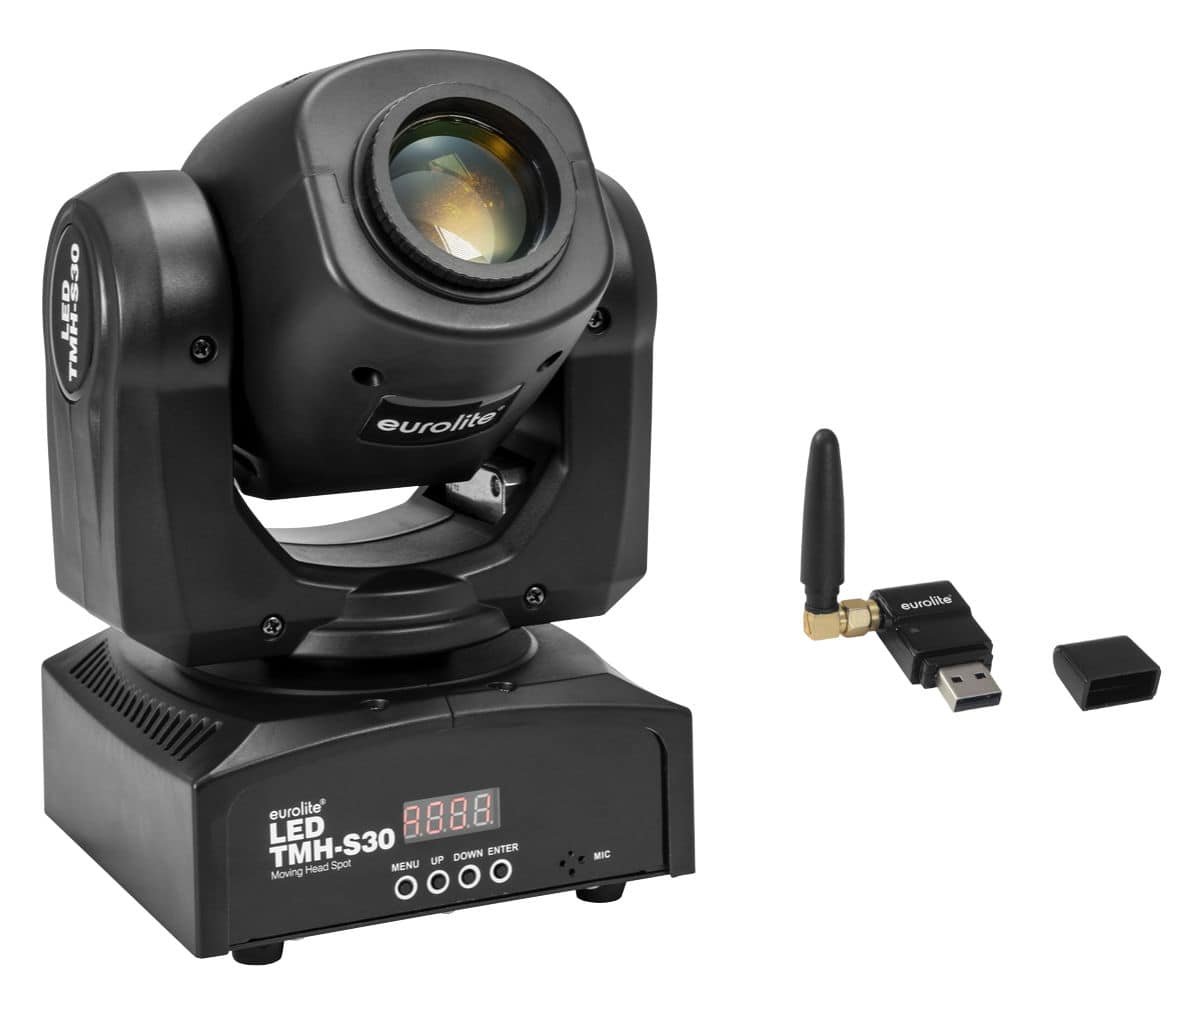 Lichtsets - Eurolite TMH S30 Moving Head Spot Wireless DMX Set - Onlineshop Musikhaus Kirstein